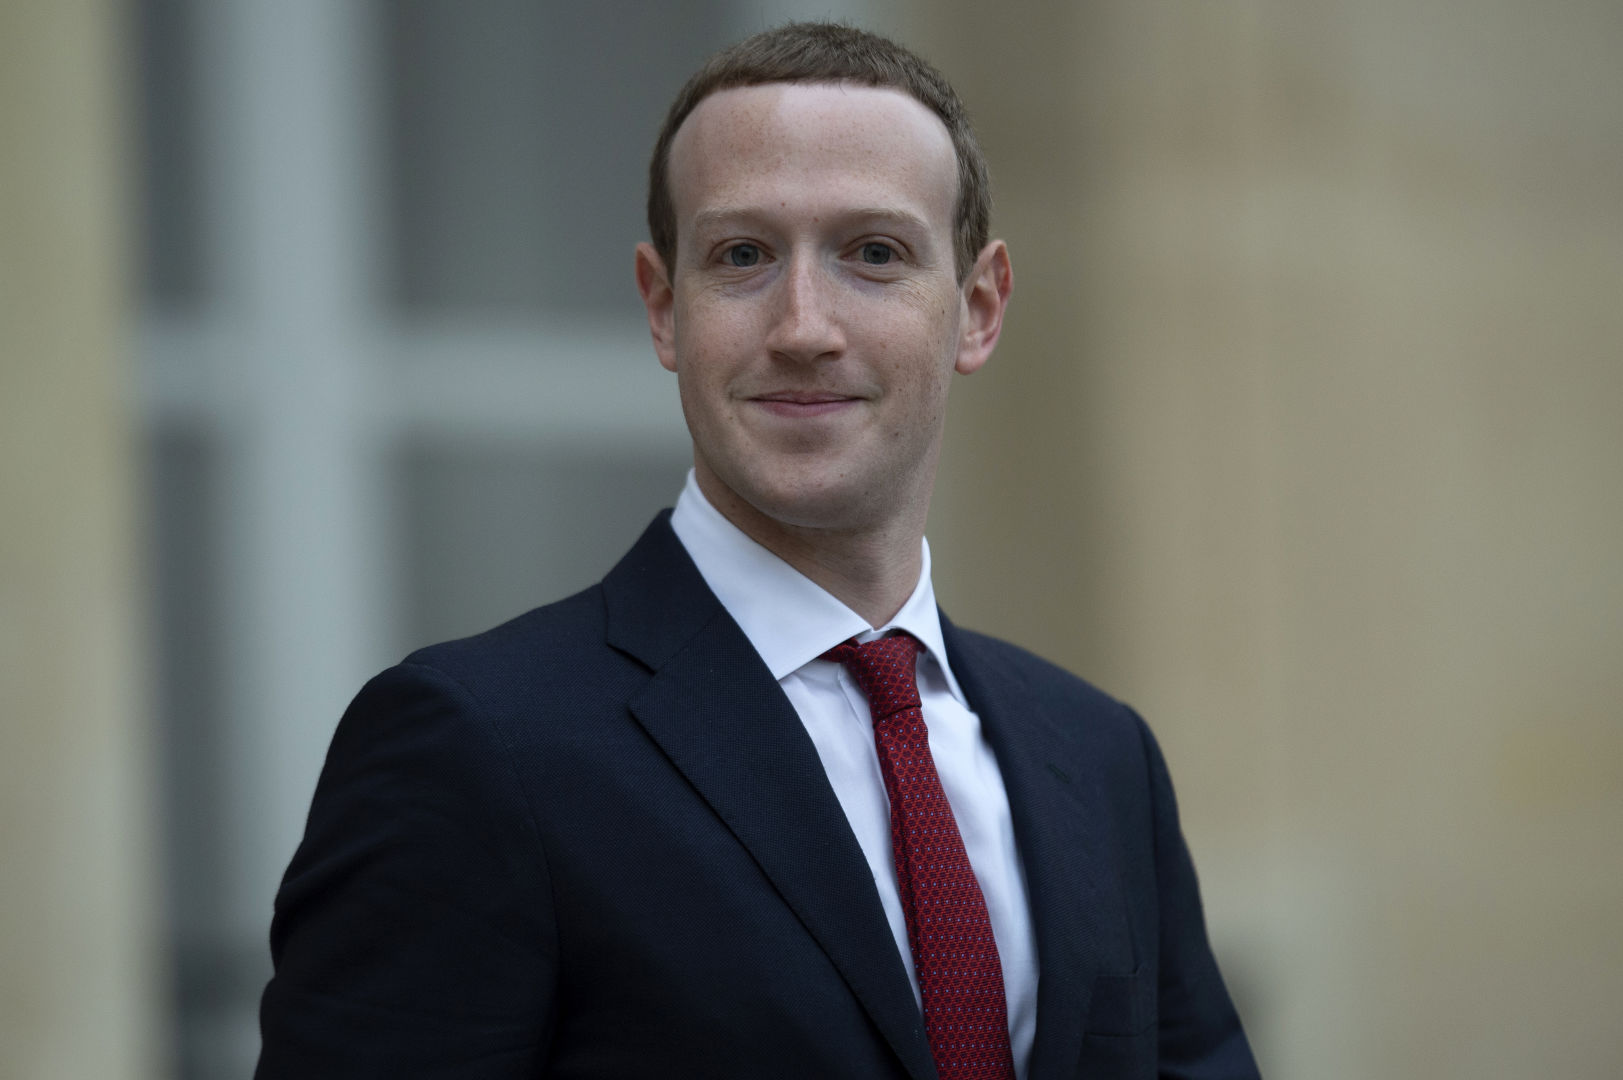 Senators give Facebook's Zuckerberg 'an earful' at dinner in D.C.